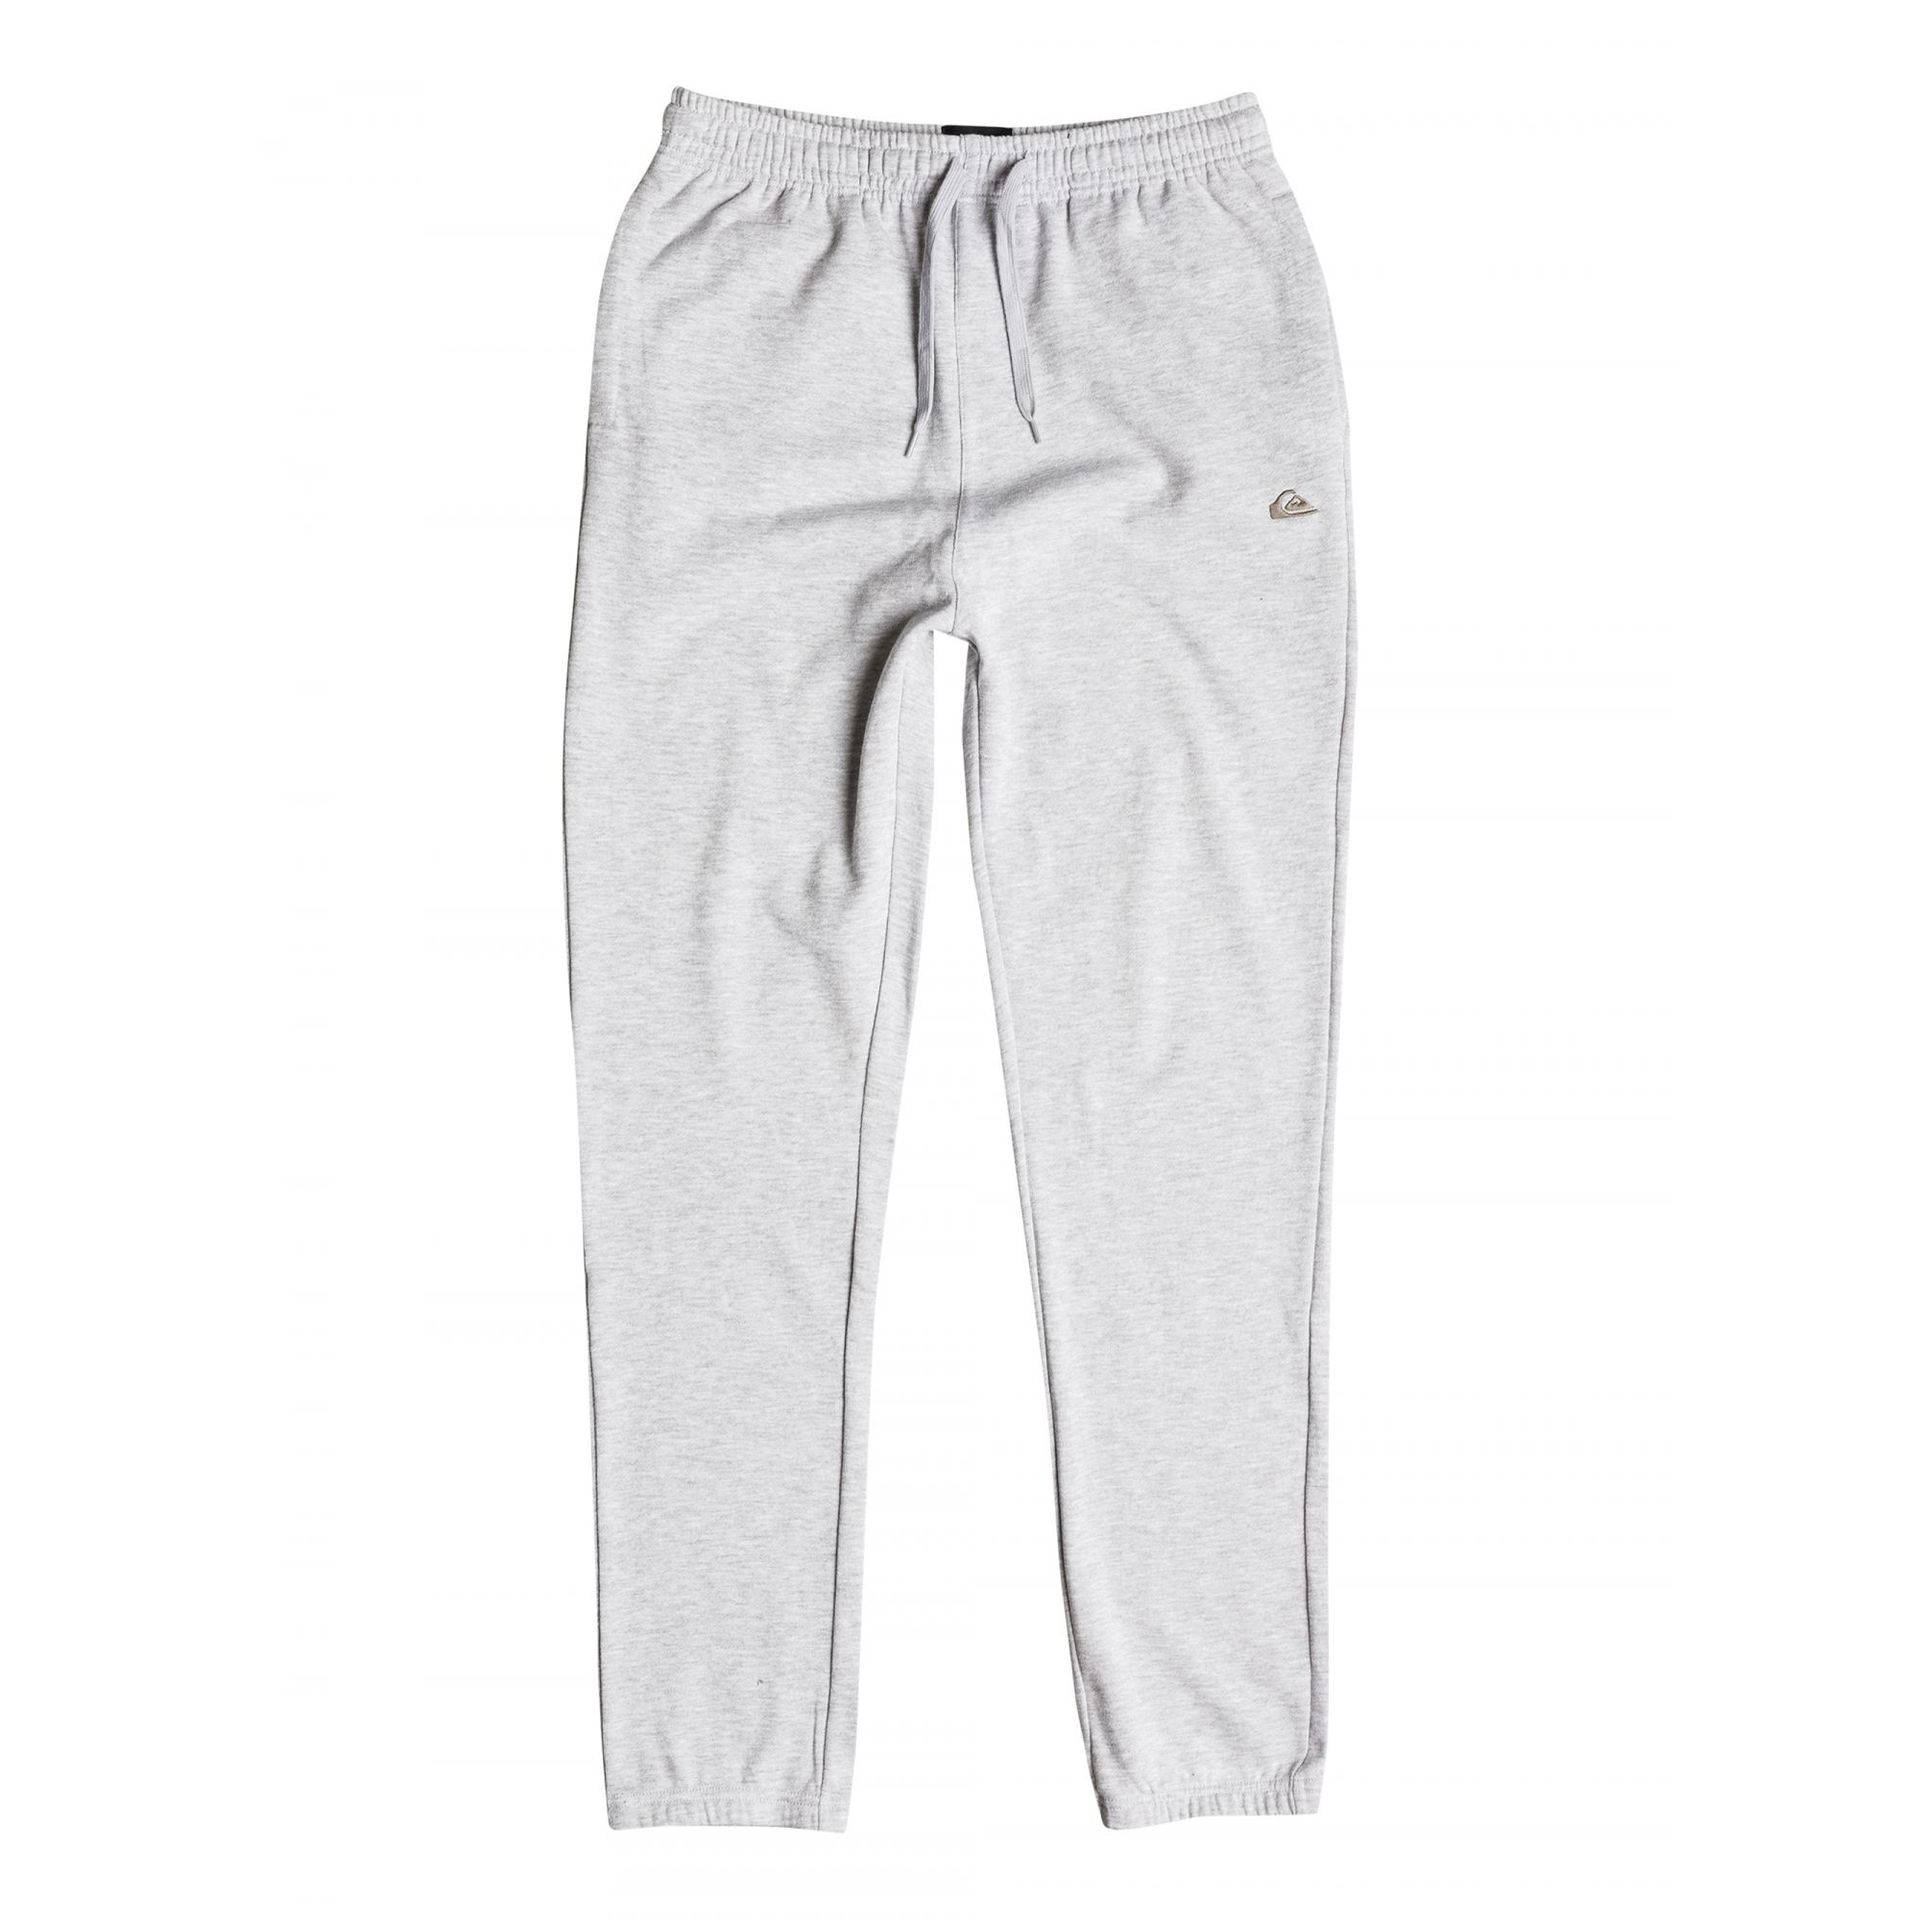 SPODNIE QUIKSILVER EVERYDAY TRACKPANT LGH 0